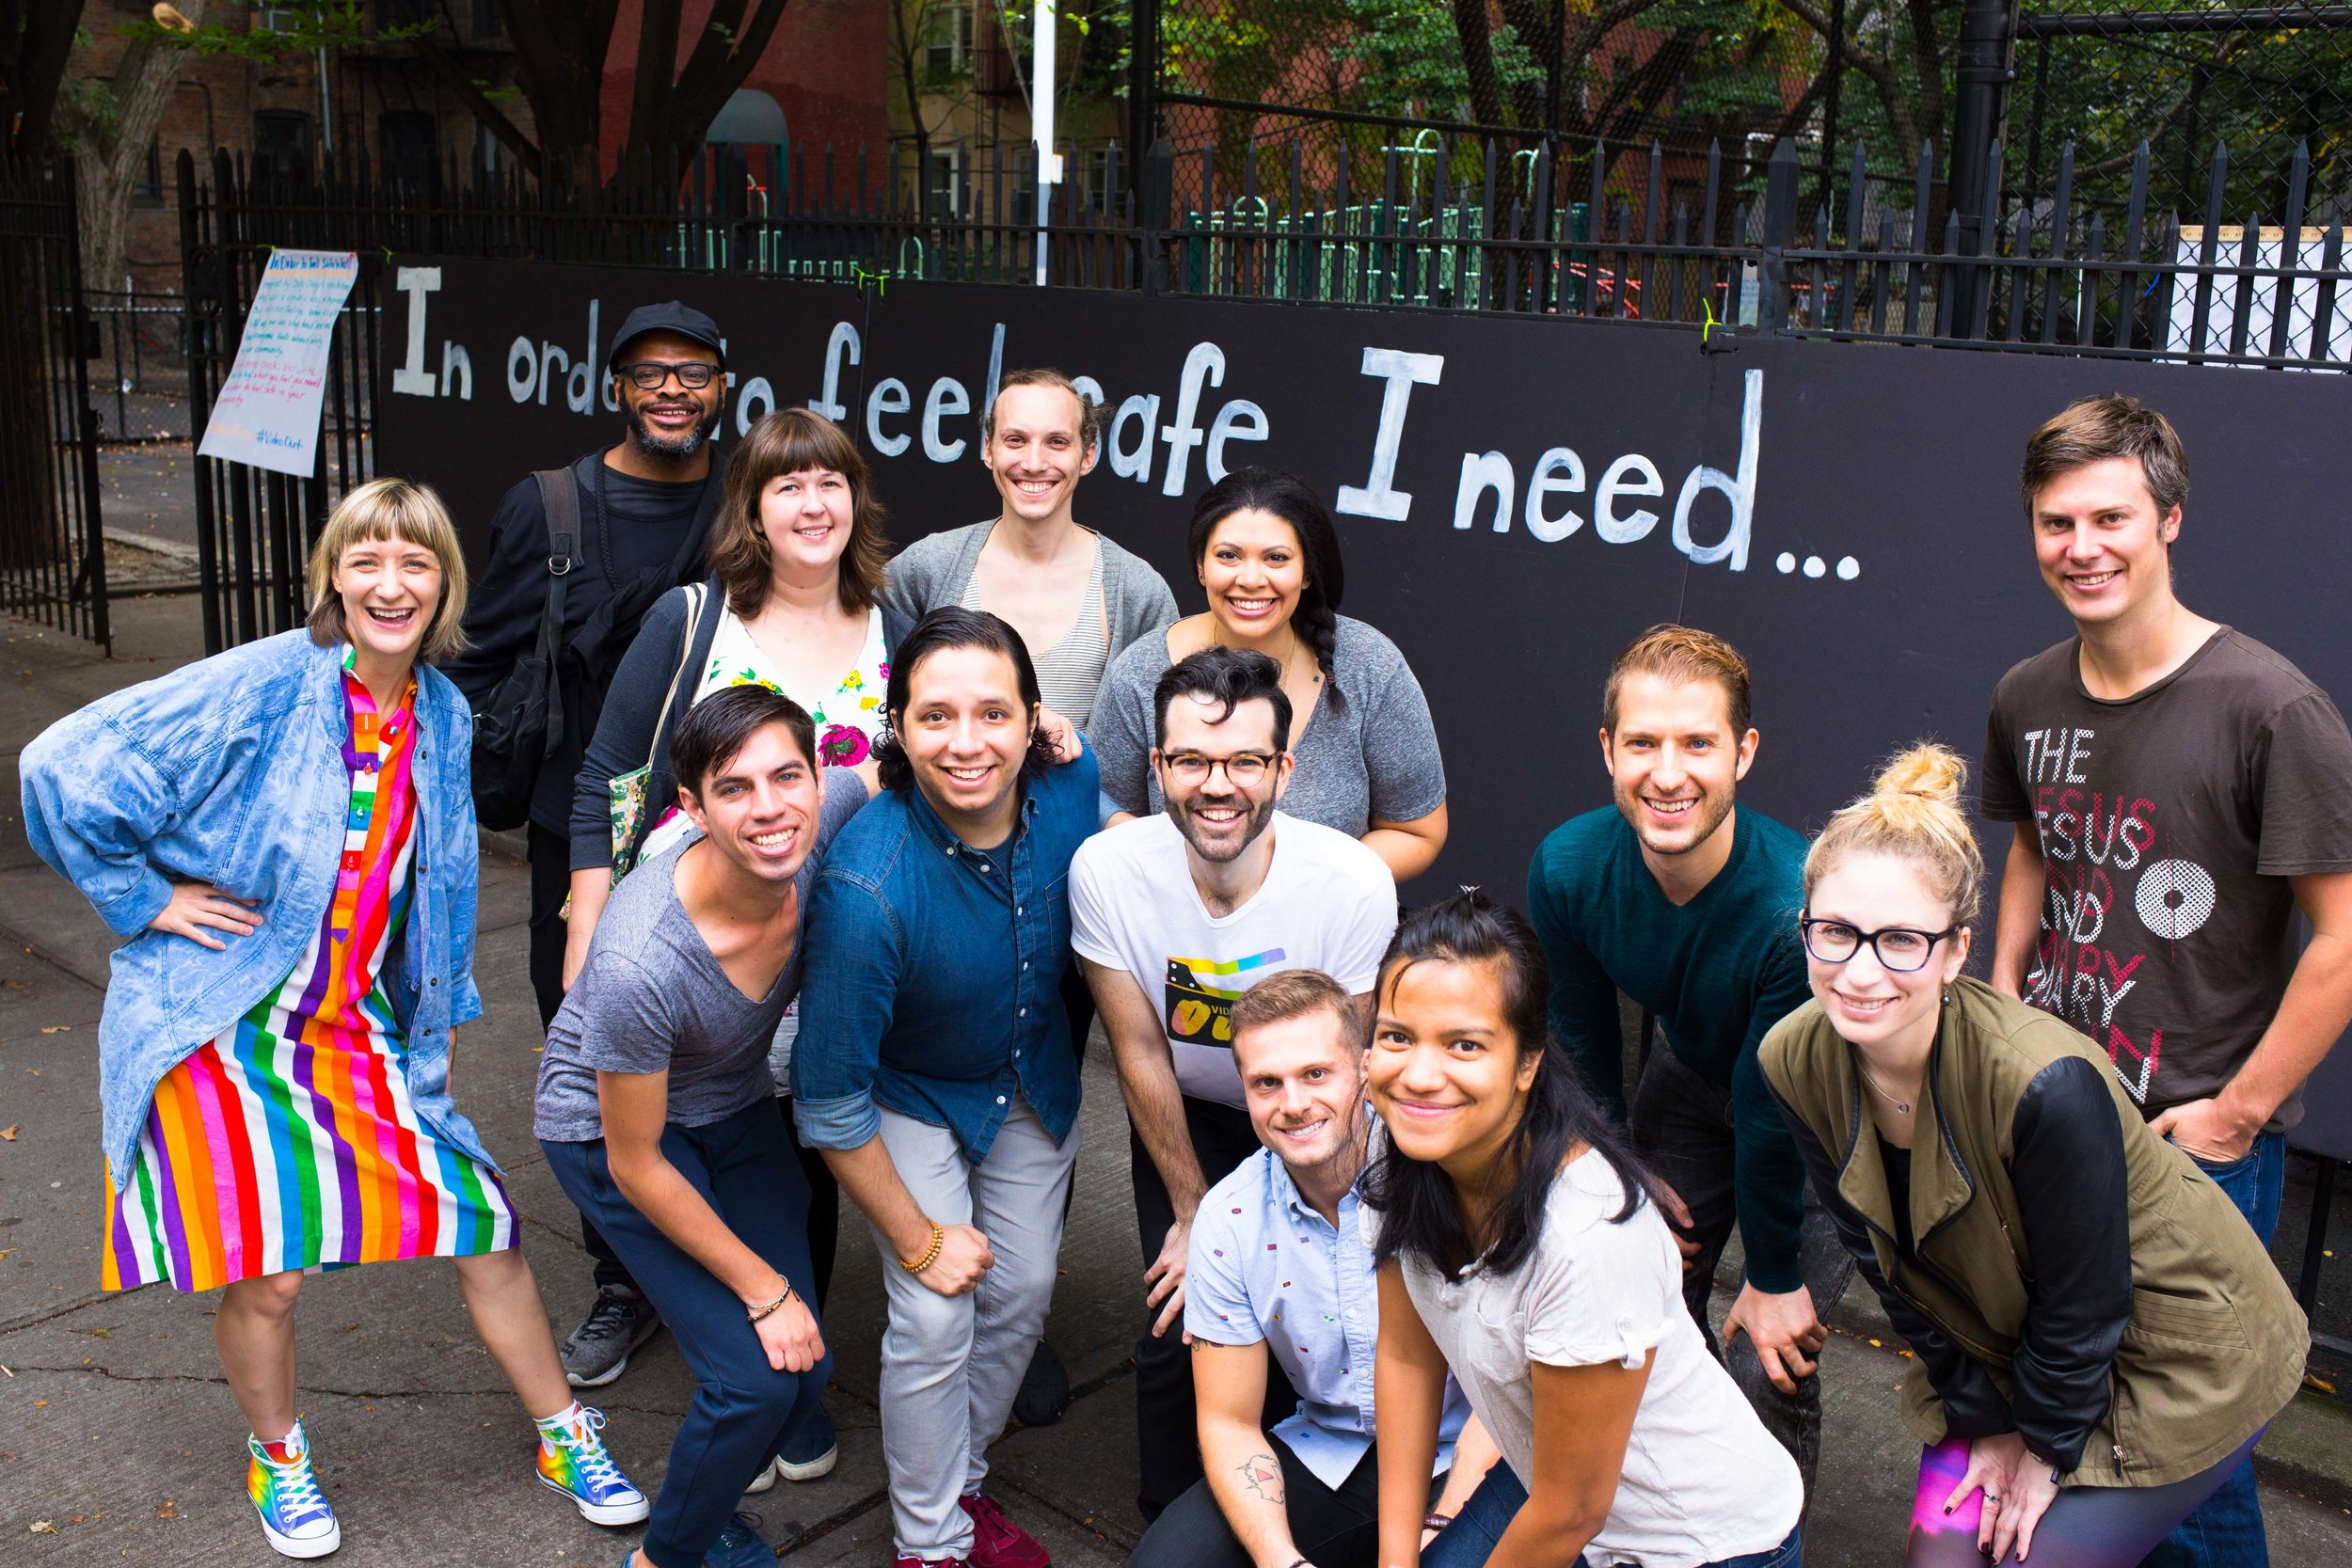 Volunteers at the inaugural Kindness Party in Williamsburg, Brooklyn. October 2017.